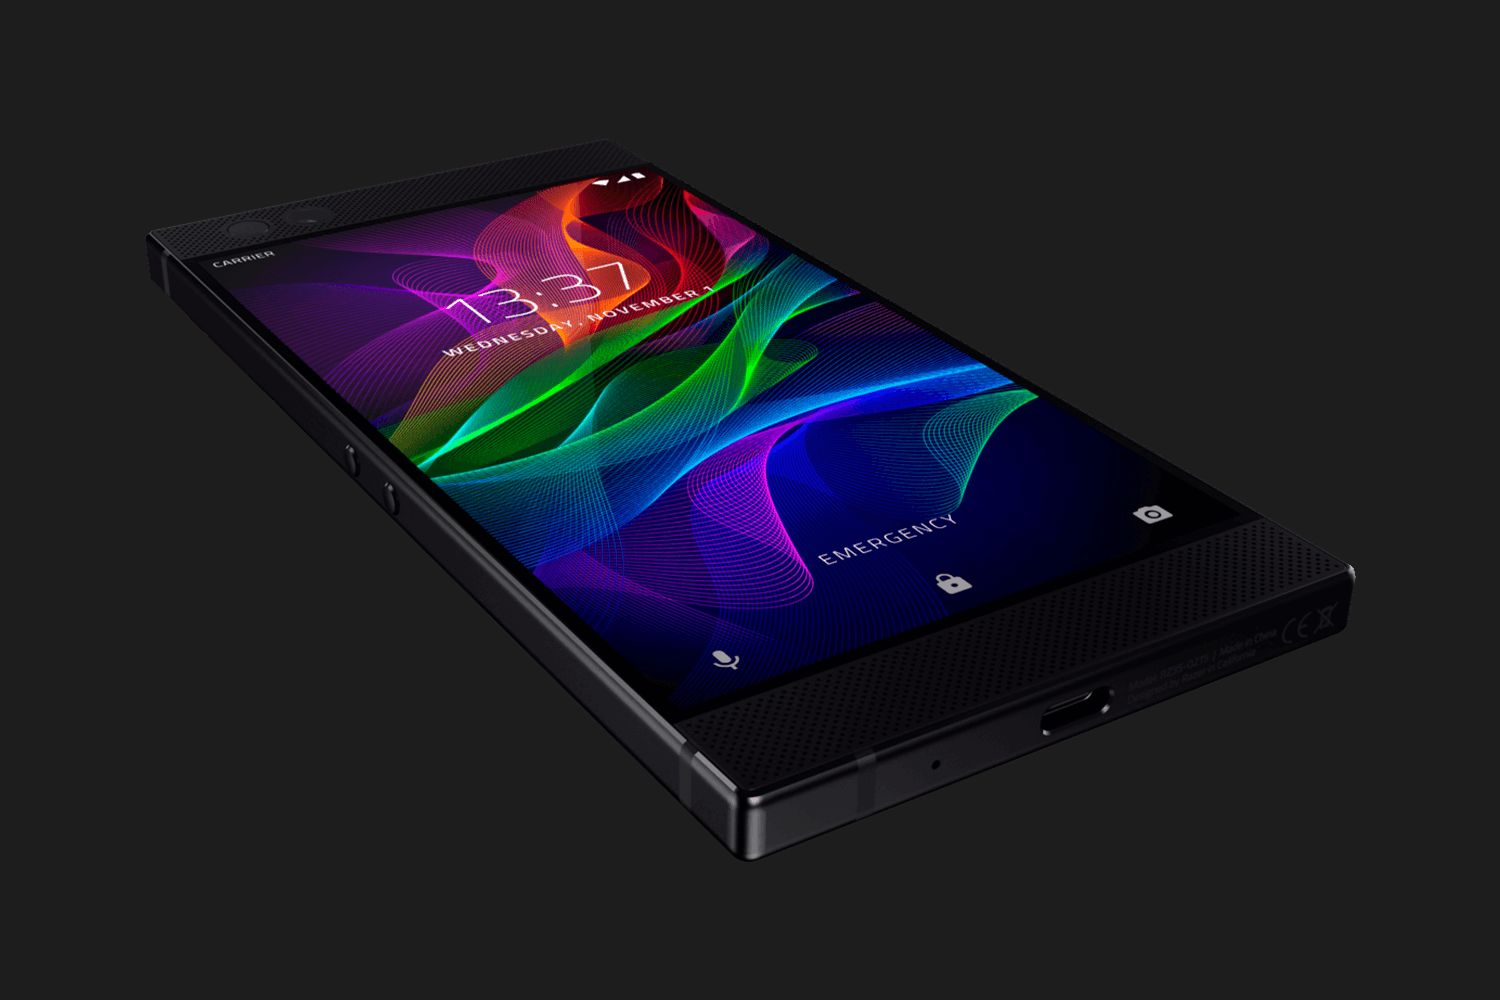 Razer CEO explains why the Razer Phone doesn't have a headphone jack